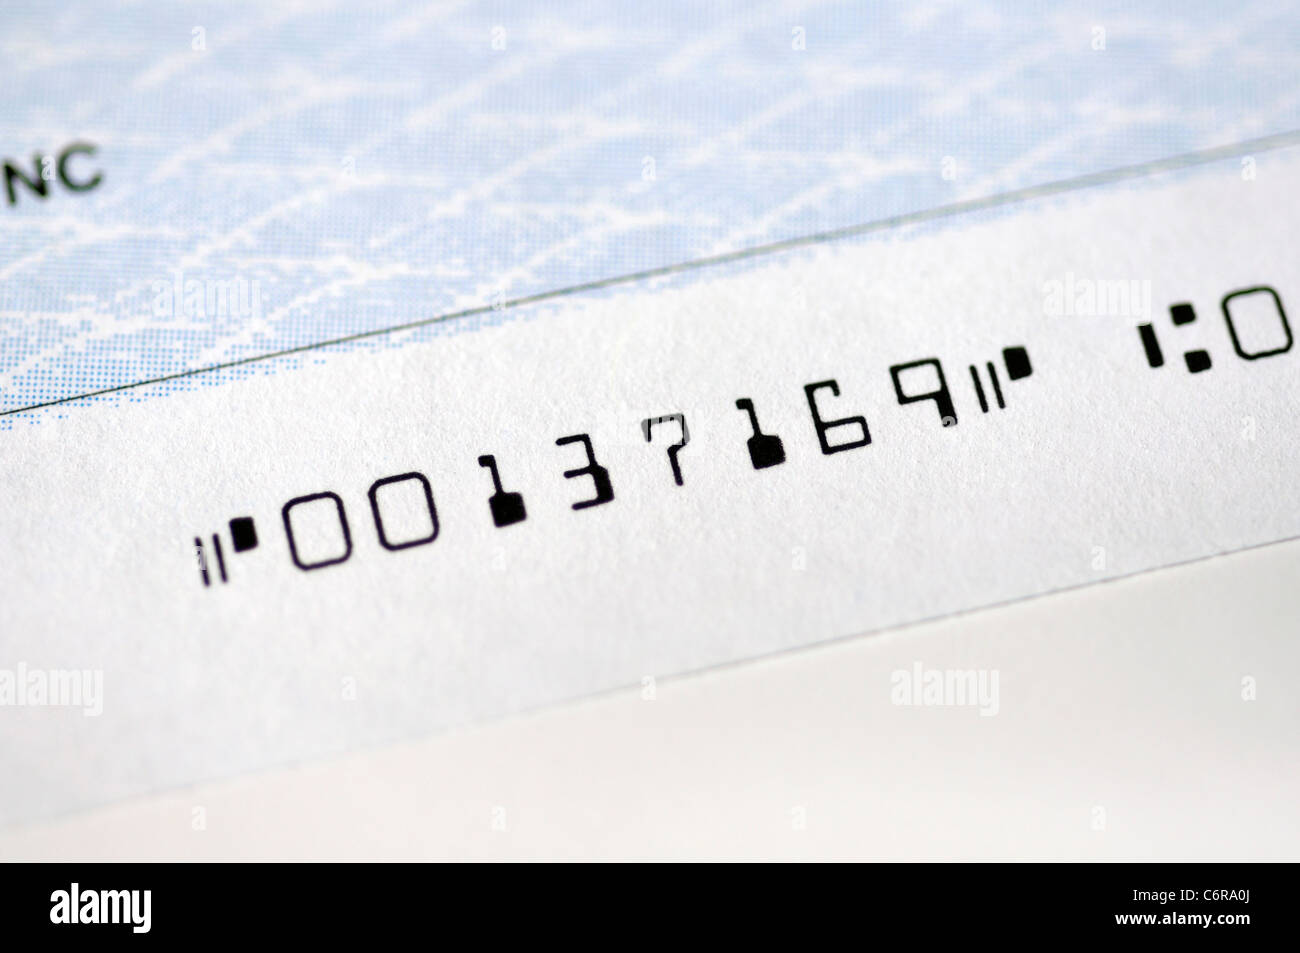 routing number stock photos & routing number stock images - alamy